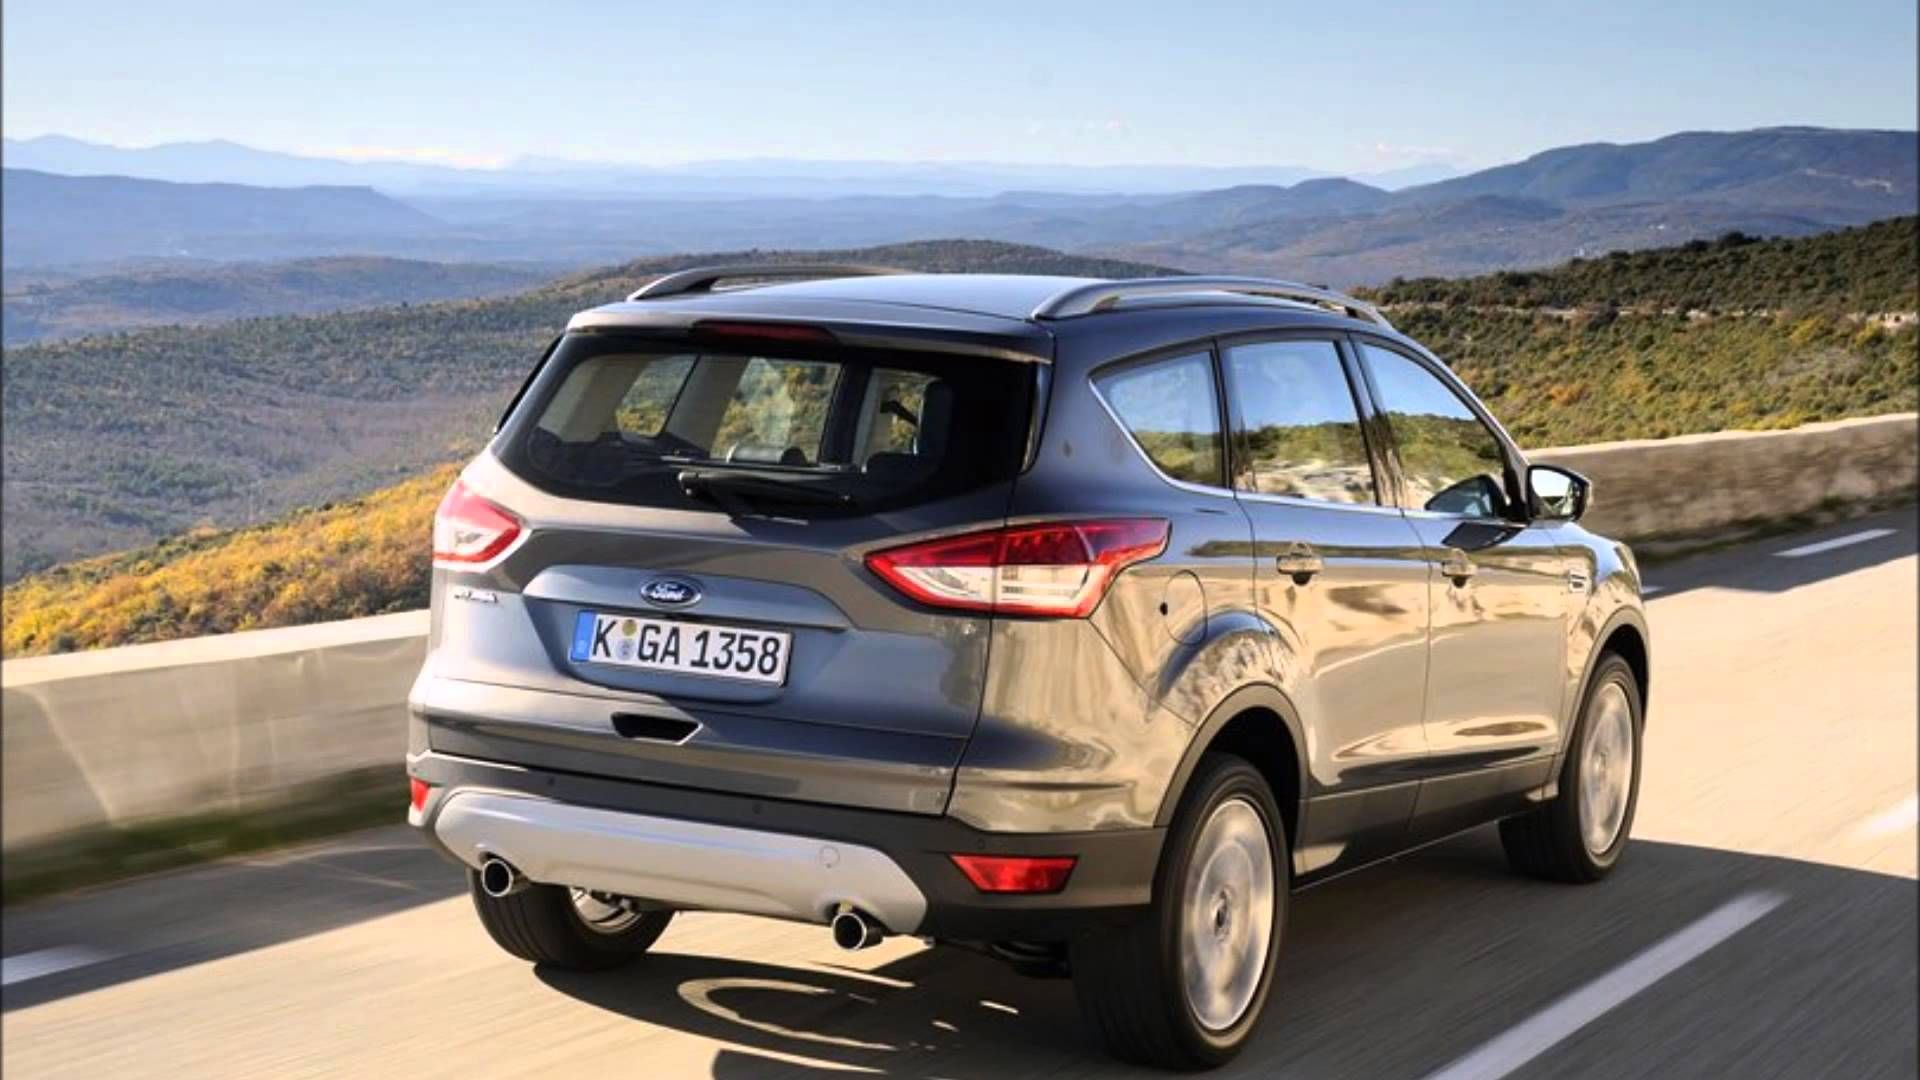 New 2016 ford kuga release date changes http futurecarrelease net